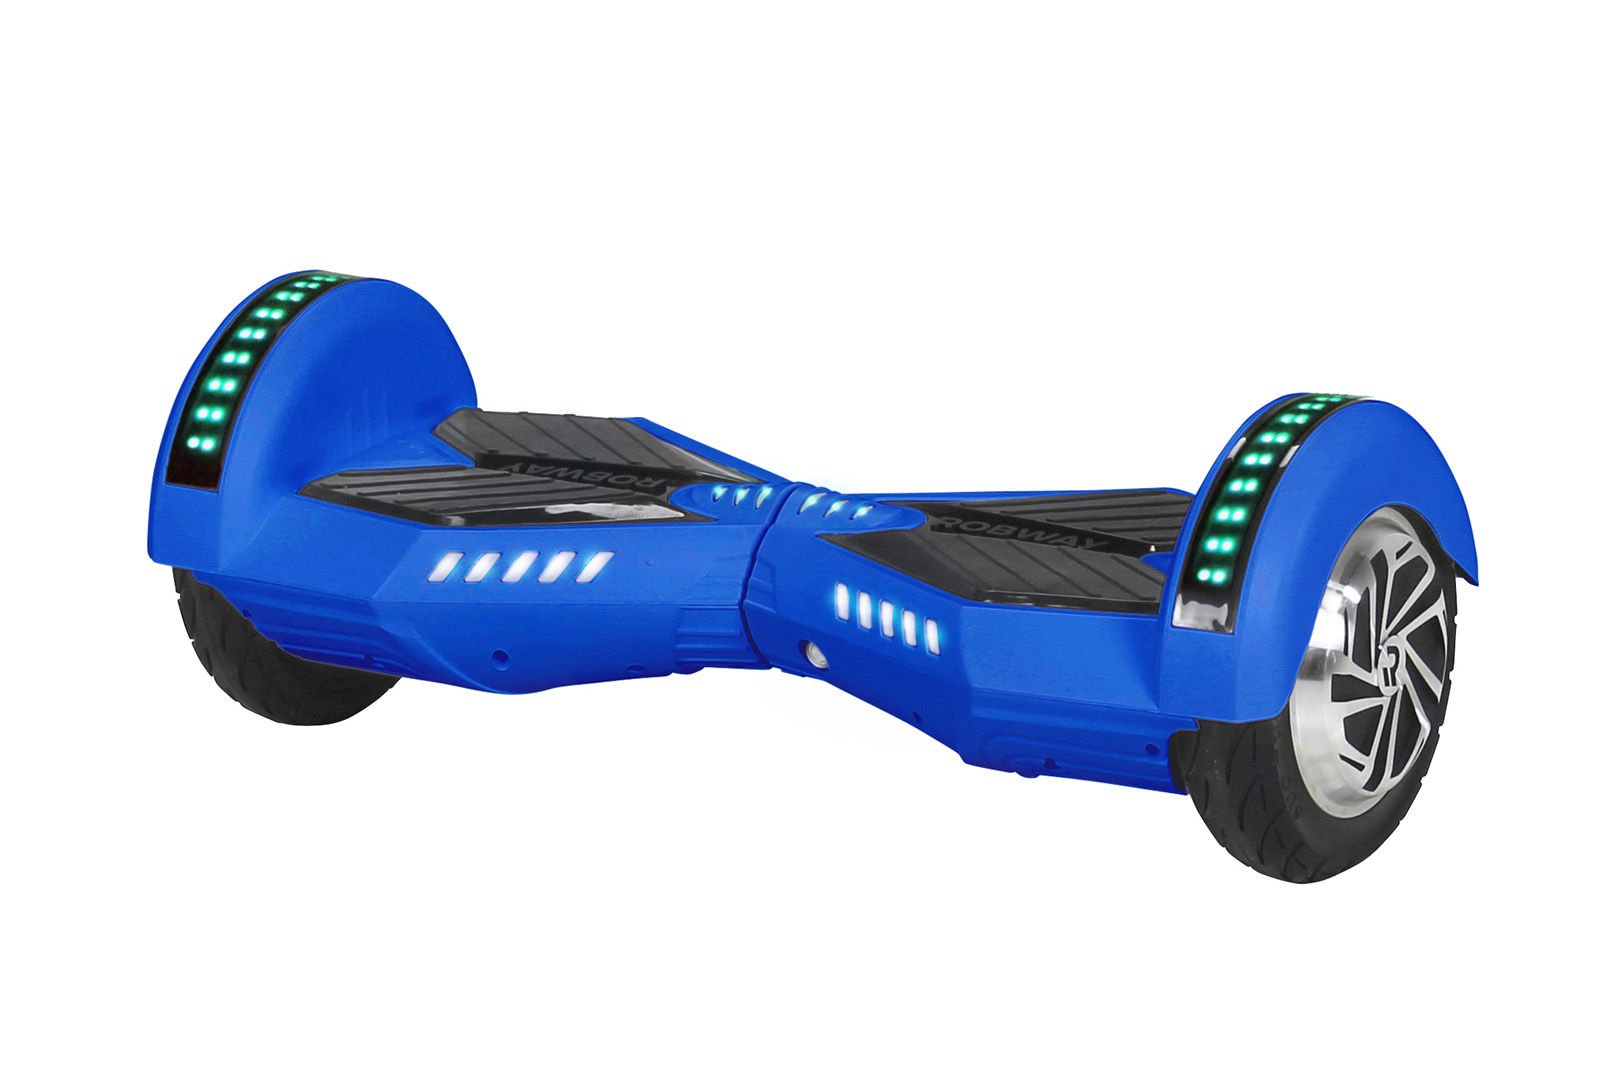 robway w2 der testsieger self balancing scooter hoverboards von robway jetzt kaufen. Black Bedroom Furniture Sets. Home Design Ideas